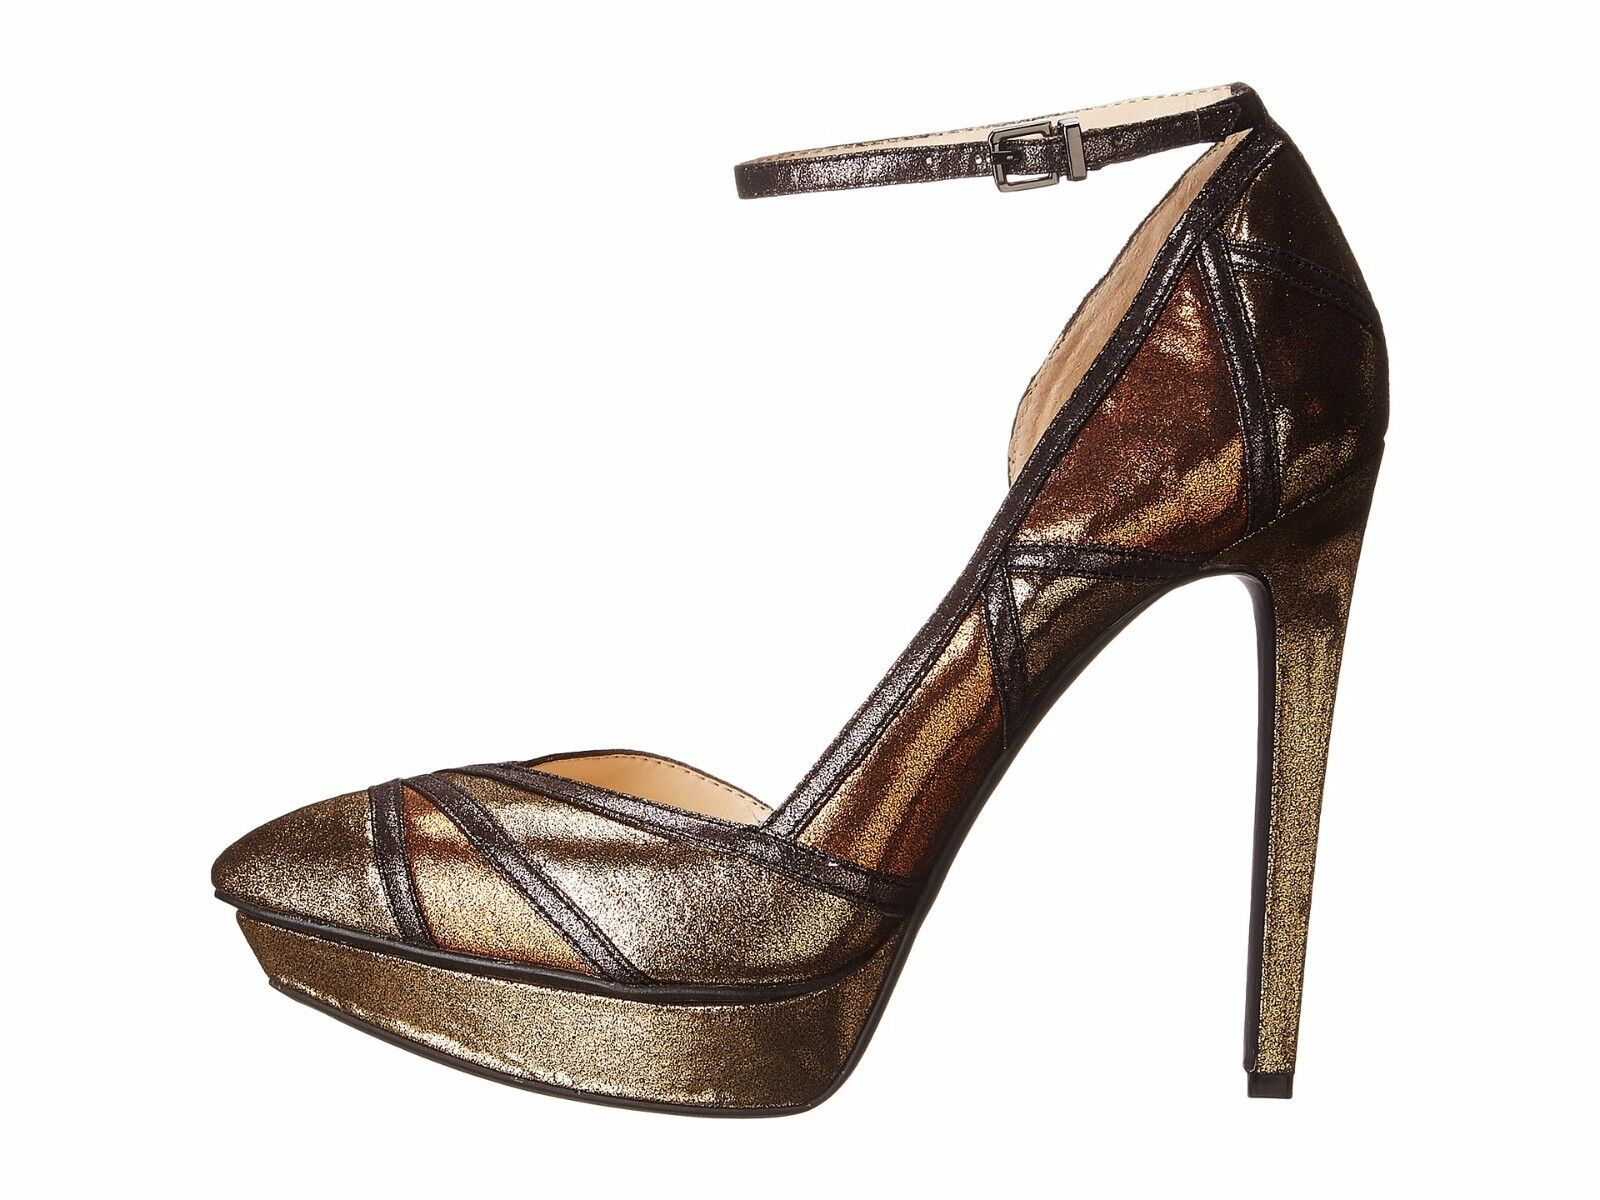 Jessica Simpson Vindie Metallic Pointed-Toe d'Orsay Pumps damen Größes Größes Größes 6-10 Gold 8e6464